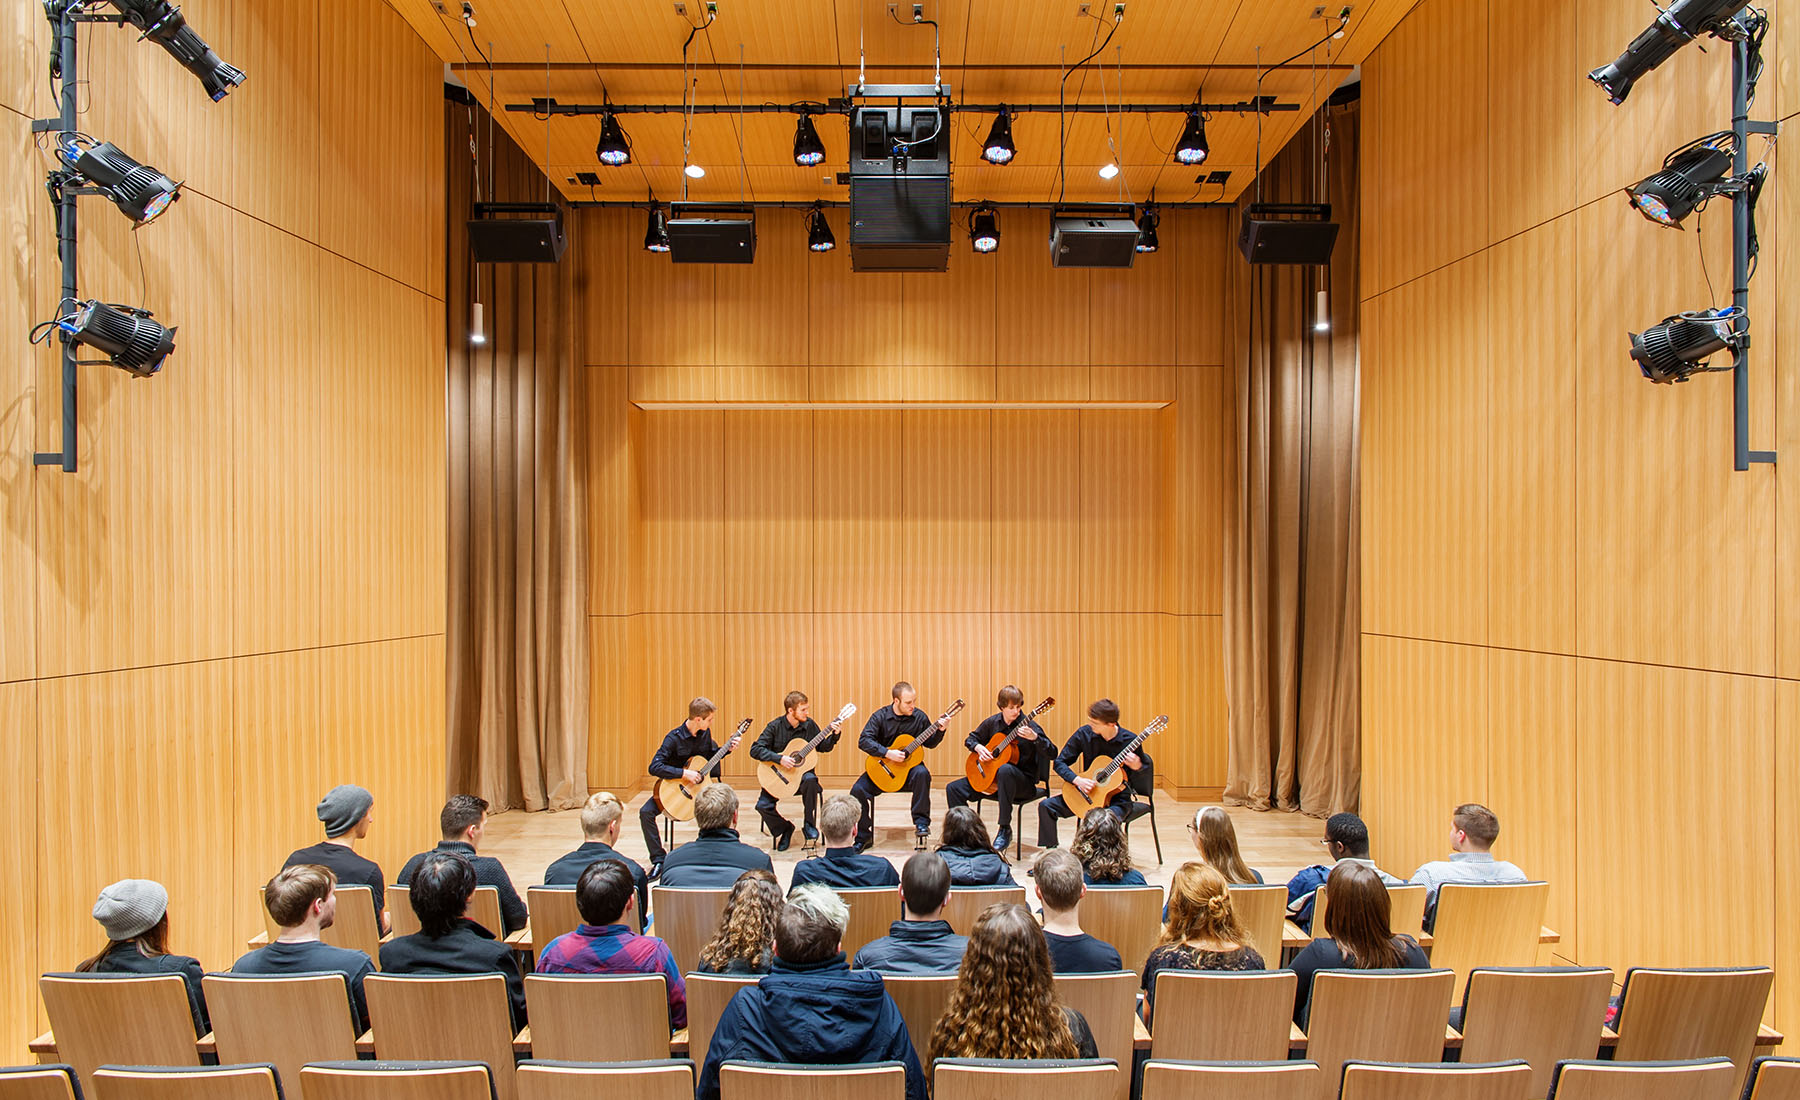 Students and instructors from a wide range of undergraduate and graduate degree programs meet and collaborate in a range of learning spaces, including: individual practice modules, small group practice rooms, teaching studios, commons rooms, traditional classrooms, and choral, percussion, and band practice rooms – each painstakingly designed to produce the perfect physical space for musical performance.